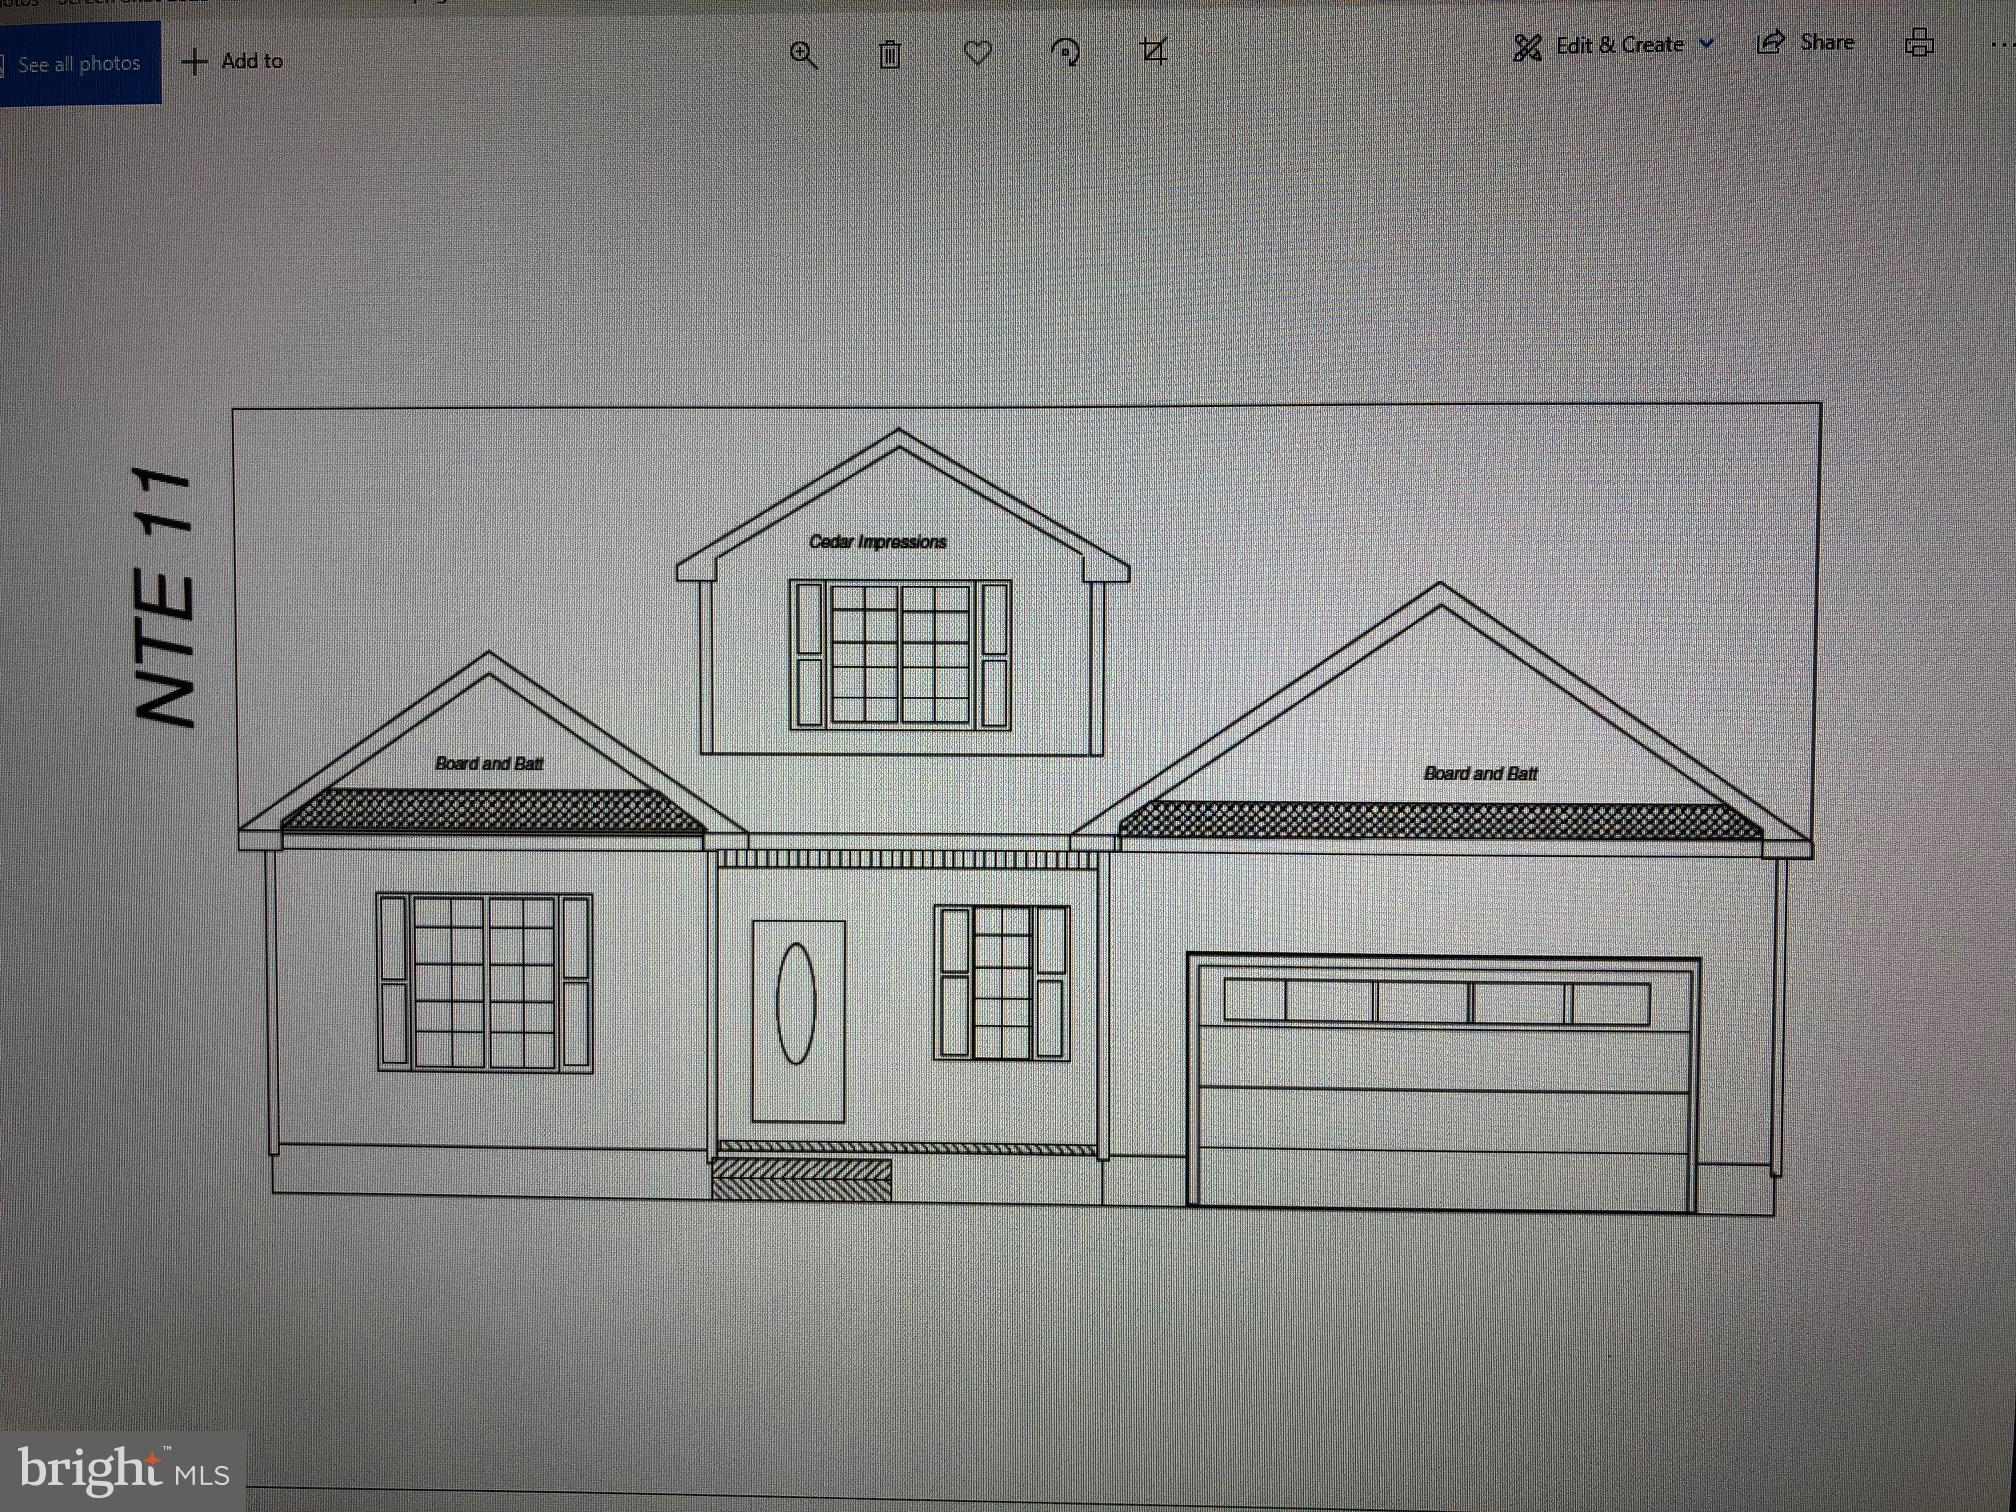 Look no further!!! Large 3 bedroom home with upstairs and downstairs master suites! Need hobby space or office, this one has it.  Large open floor plan downstairs with a dream kitchen, separate utility, half bath off the great room and more. Pick your design features while you still can.